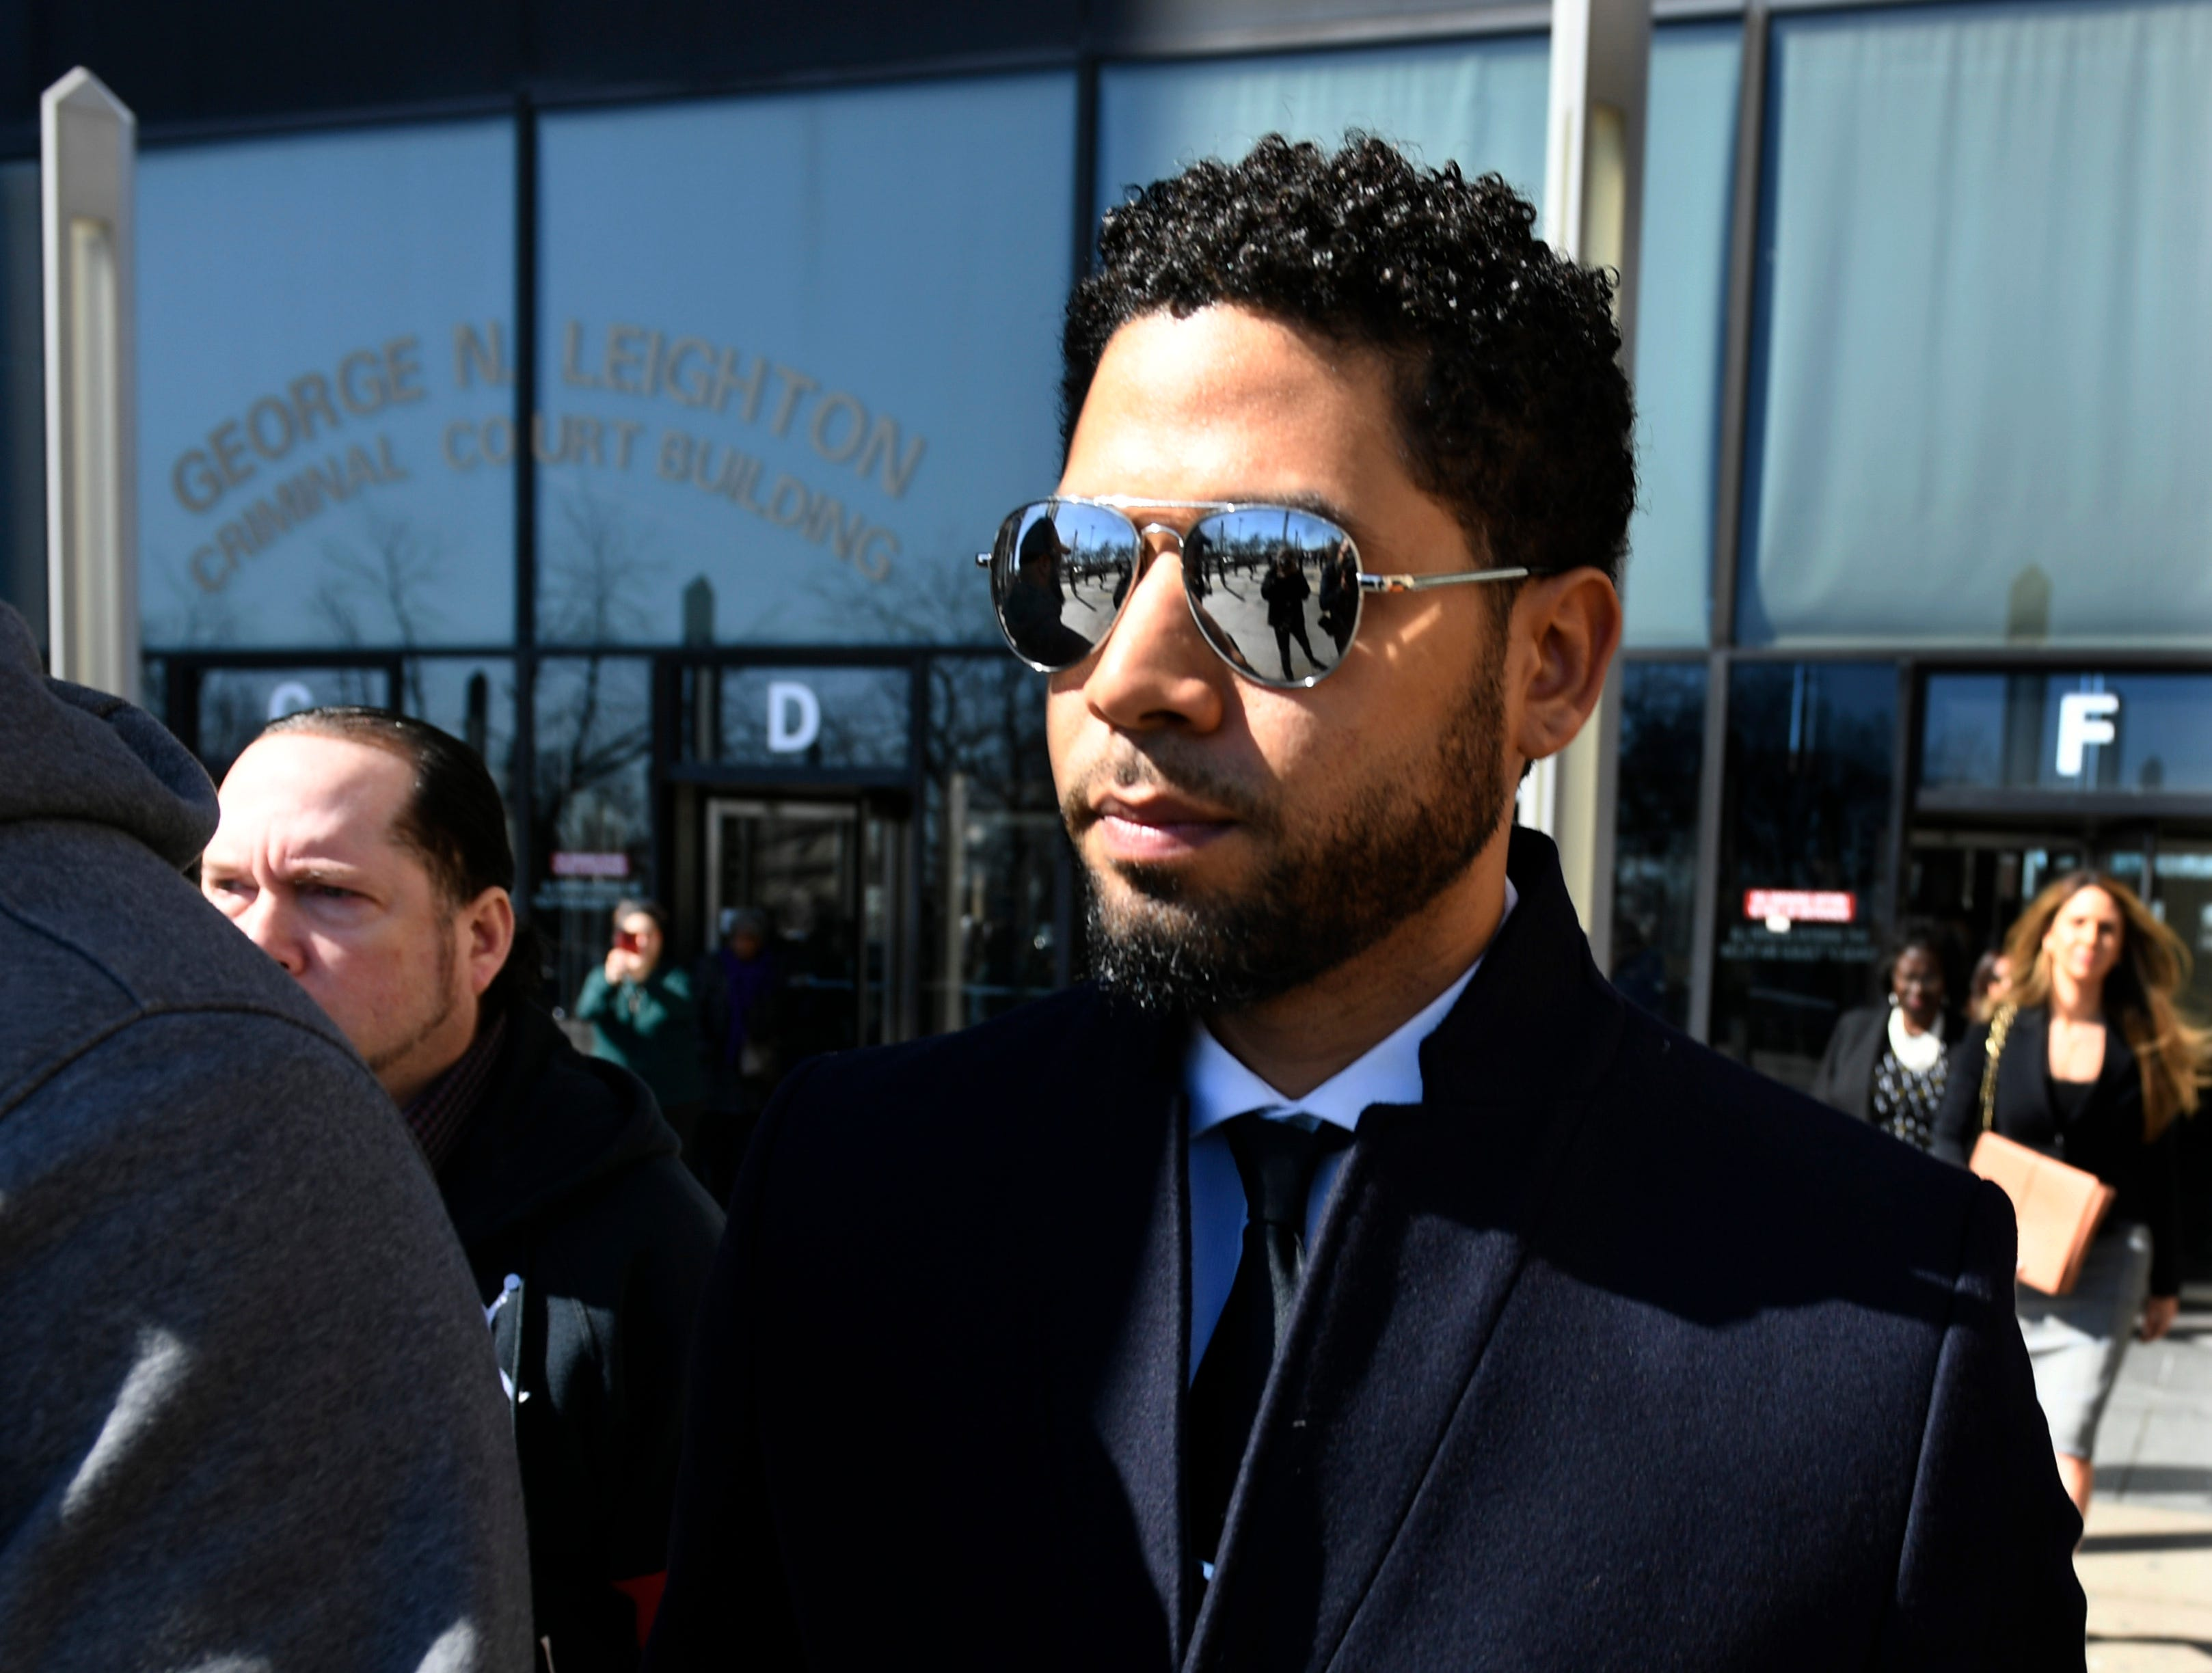 Jussie Smollett case underscores why many don't report violence against them: Today's talker